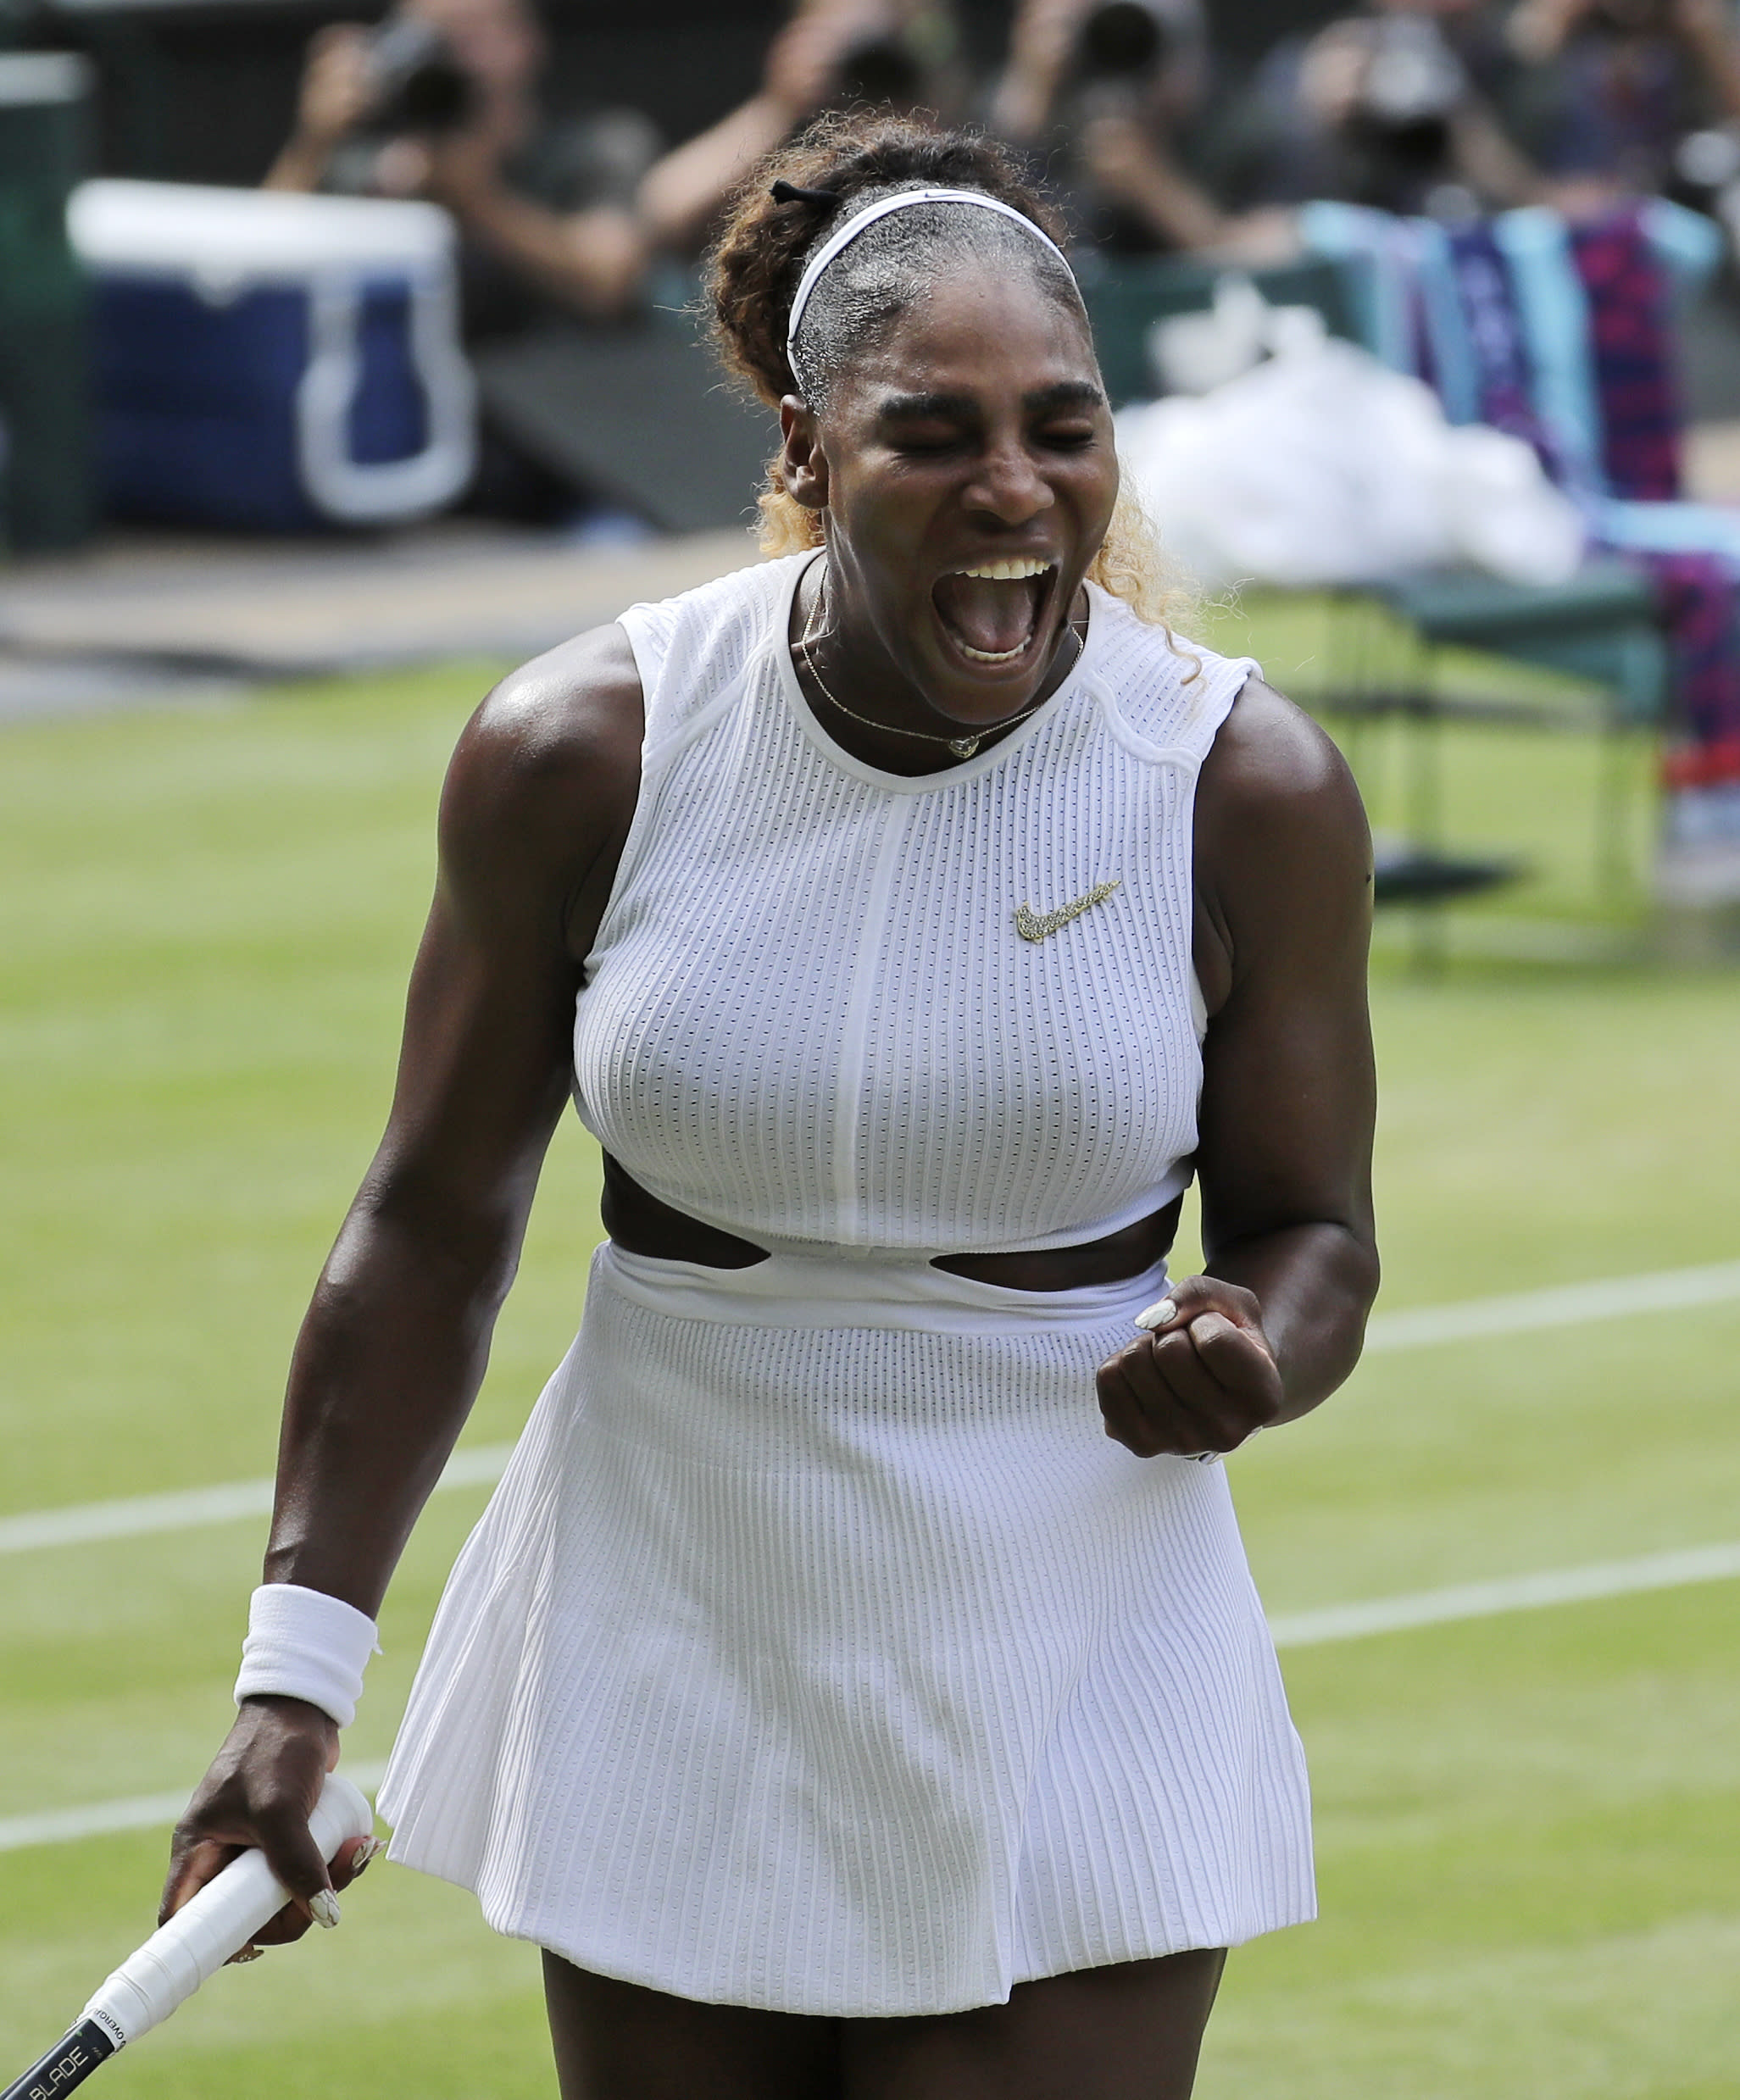 United States' Serena Williams reacts as she plays Czech Republic's Barbora Strycova in a Women's semifinal singles match on day ten of the Wimbledon Tennis Championships in London Thursday